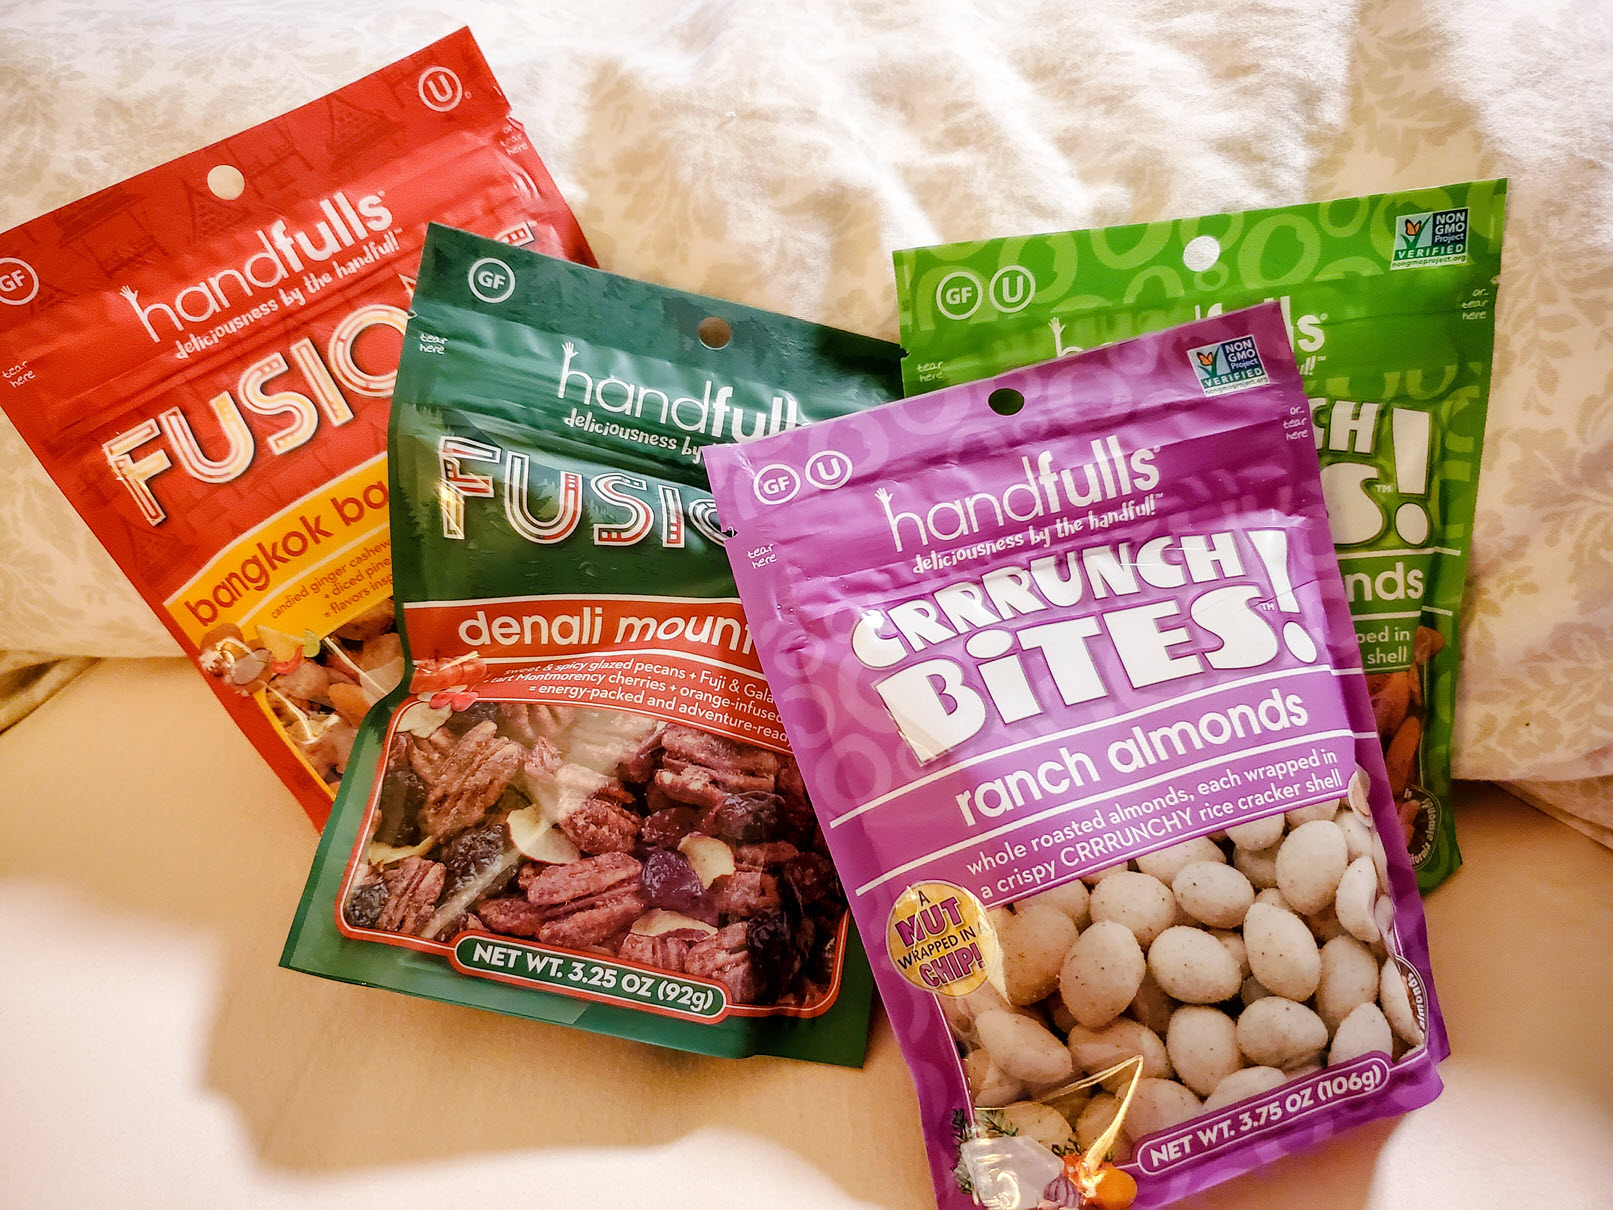 CrrrunchBites Almonds Favorites (6-Pack) BBQ, Chili Lime, Honey Mustard, Nacho, Ranch & Sea Salt, by Handfulls.